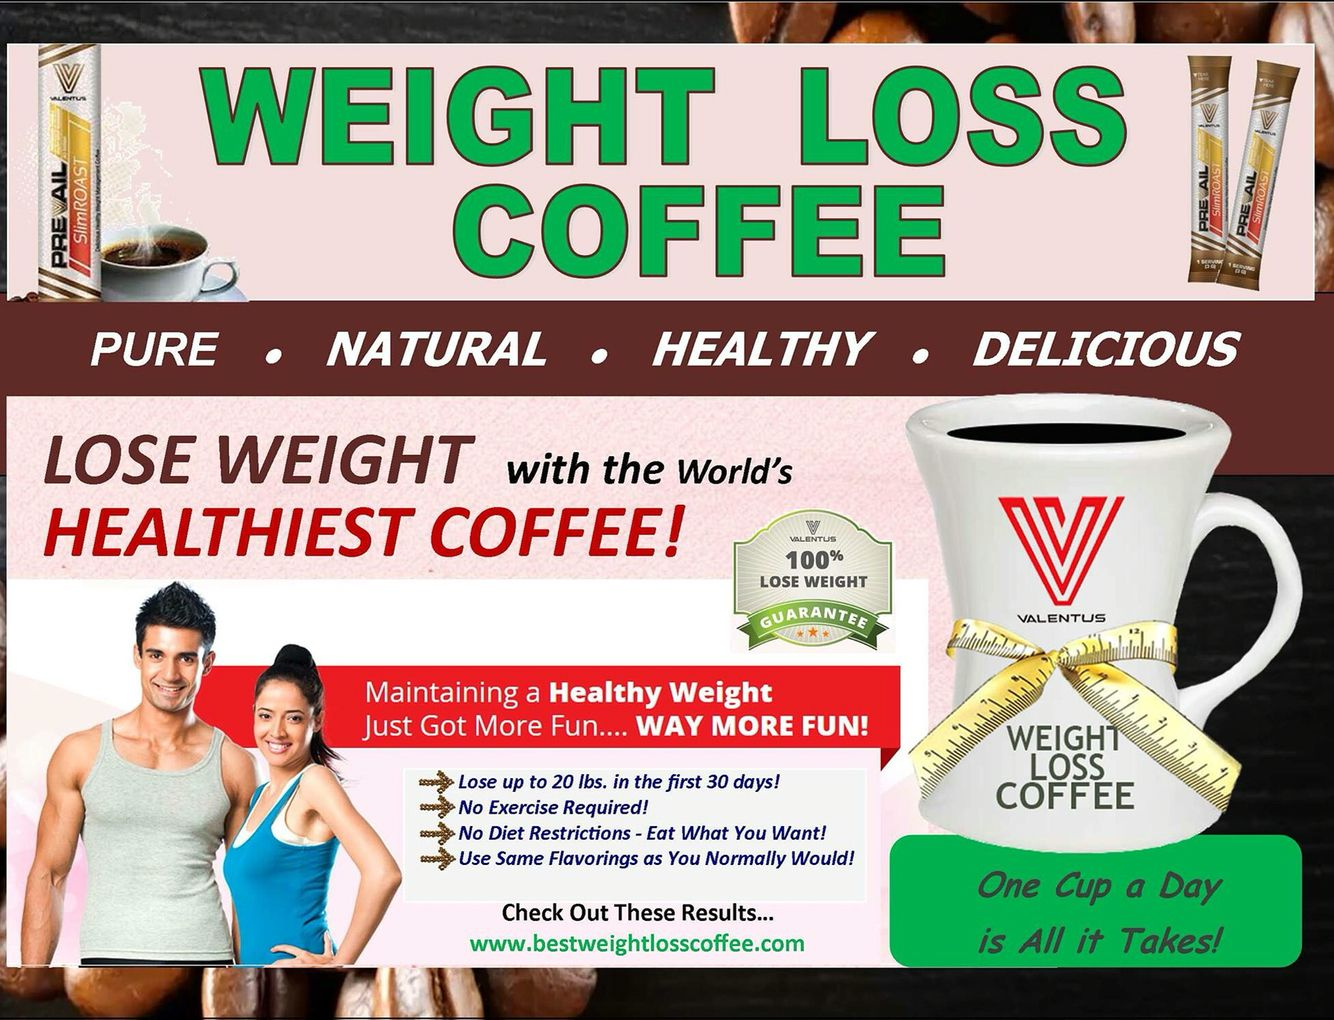 Maintaining a Healthy Weight, Just Got More FUN!!! WAY more fun!! Let's change some lives!! #behealthy #behappy #slimroastinmycup  #weightloss #12in24 #valentus #repswanted link in my bio!! ☕️